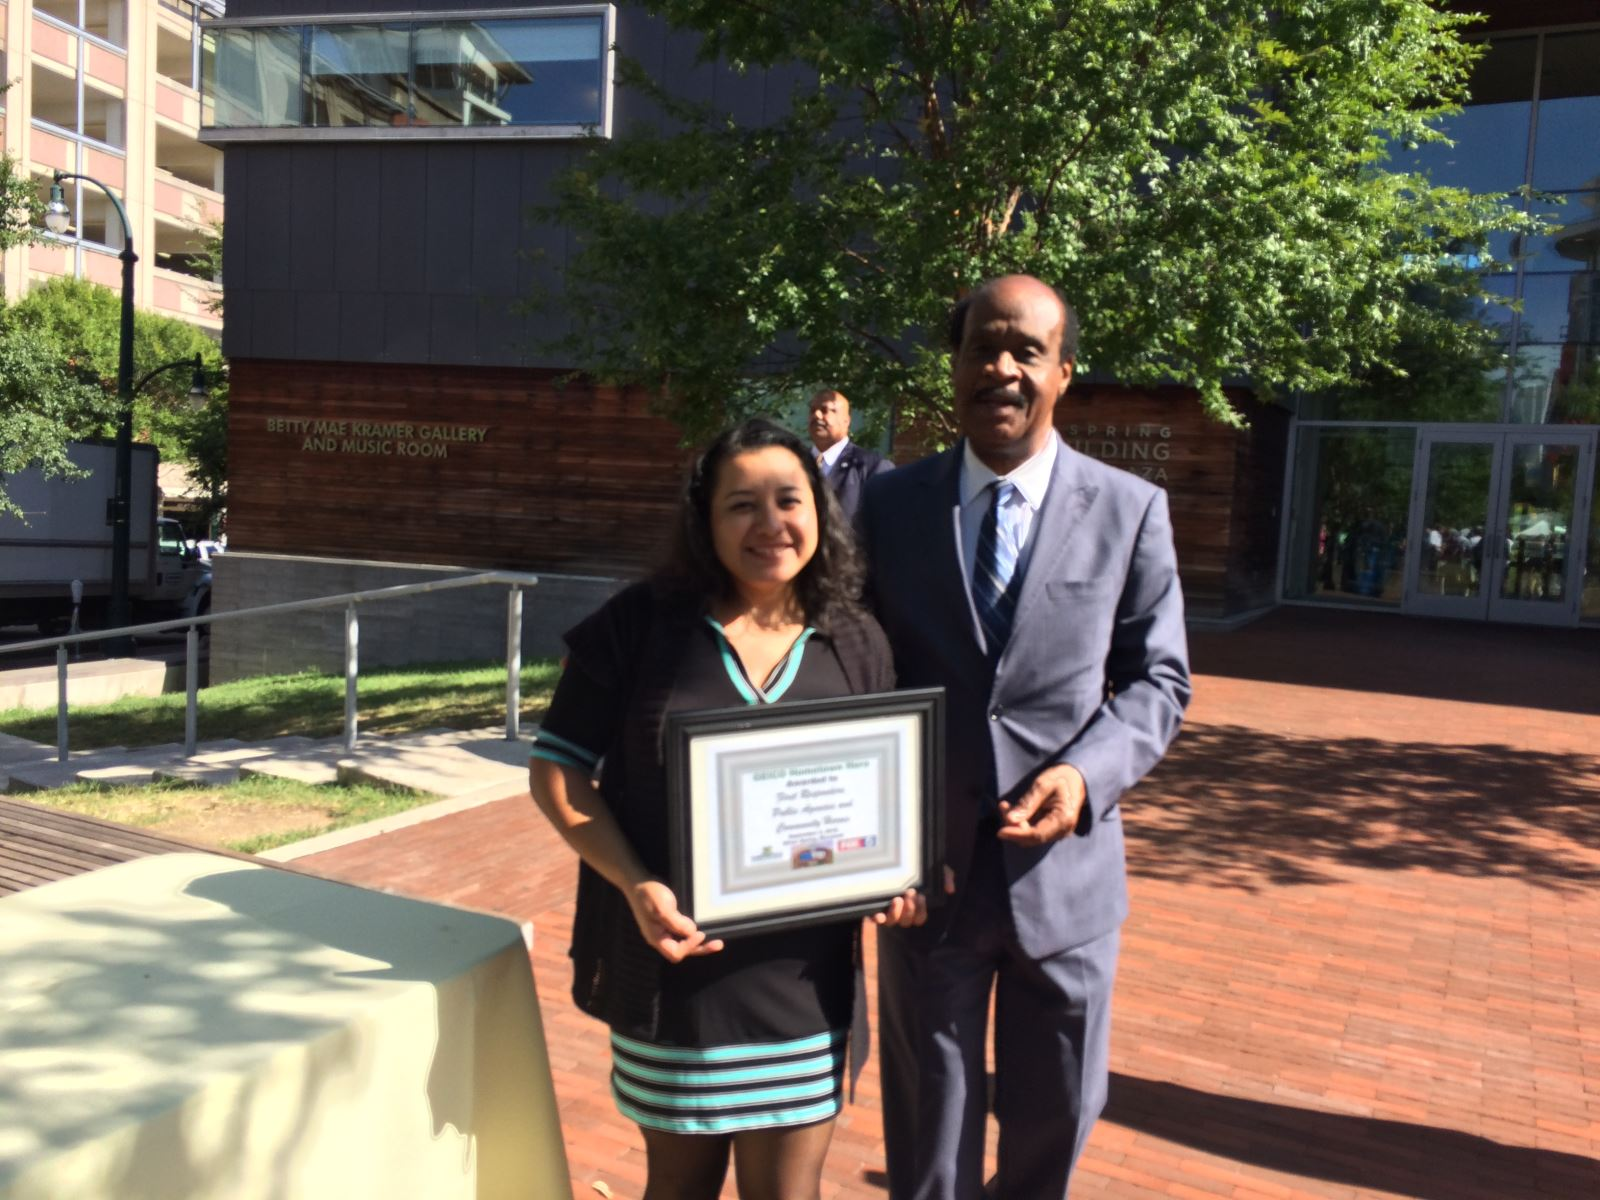 County Executive Leggett Honors the TESS Center